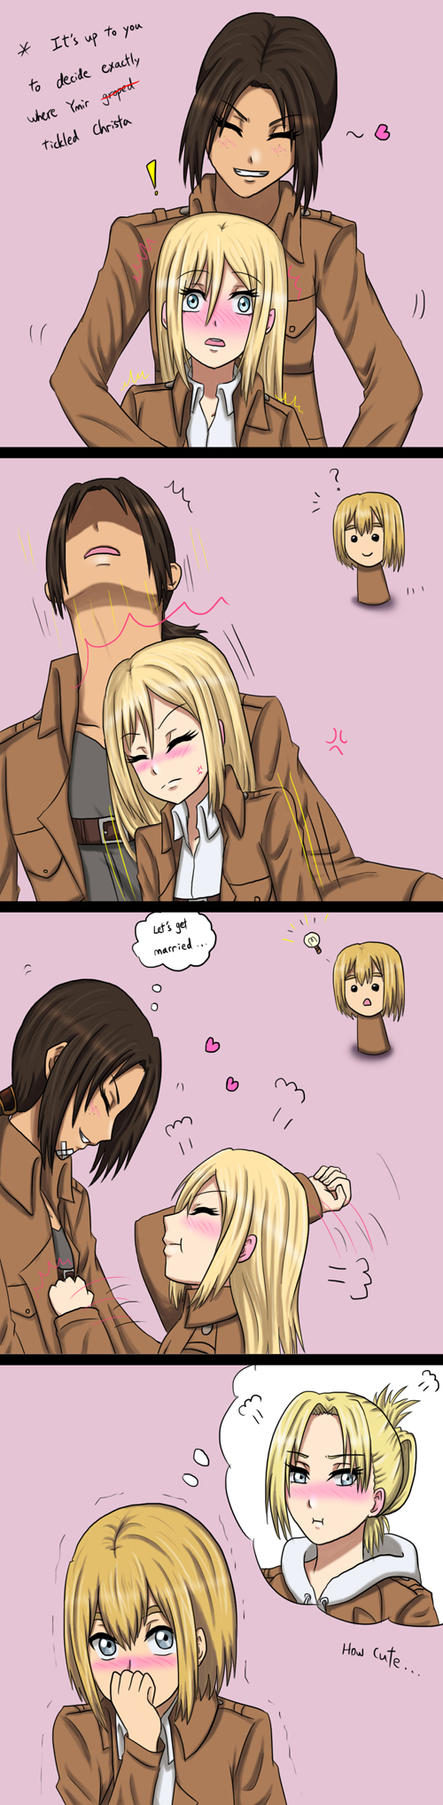 Shingeki no Kyojin(Attack on Titan) - Page 6 Snk___tickles_page1_by_athyra-d697o8g